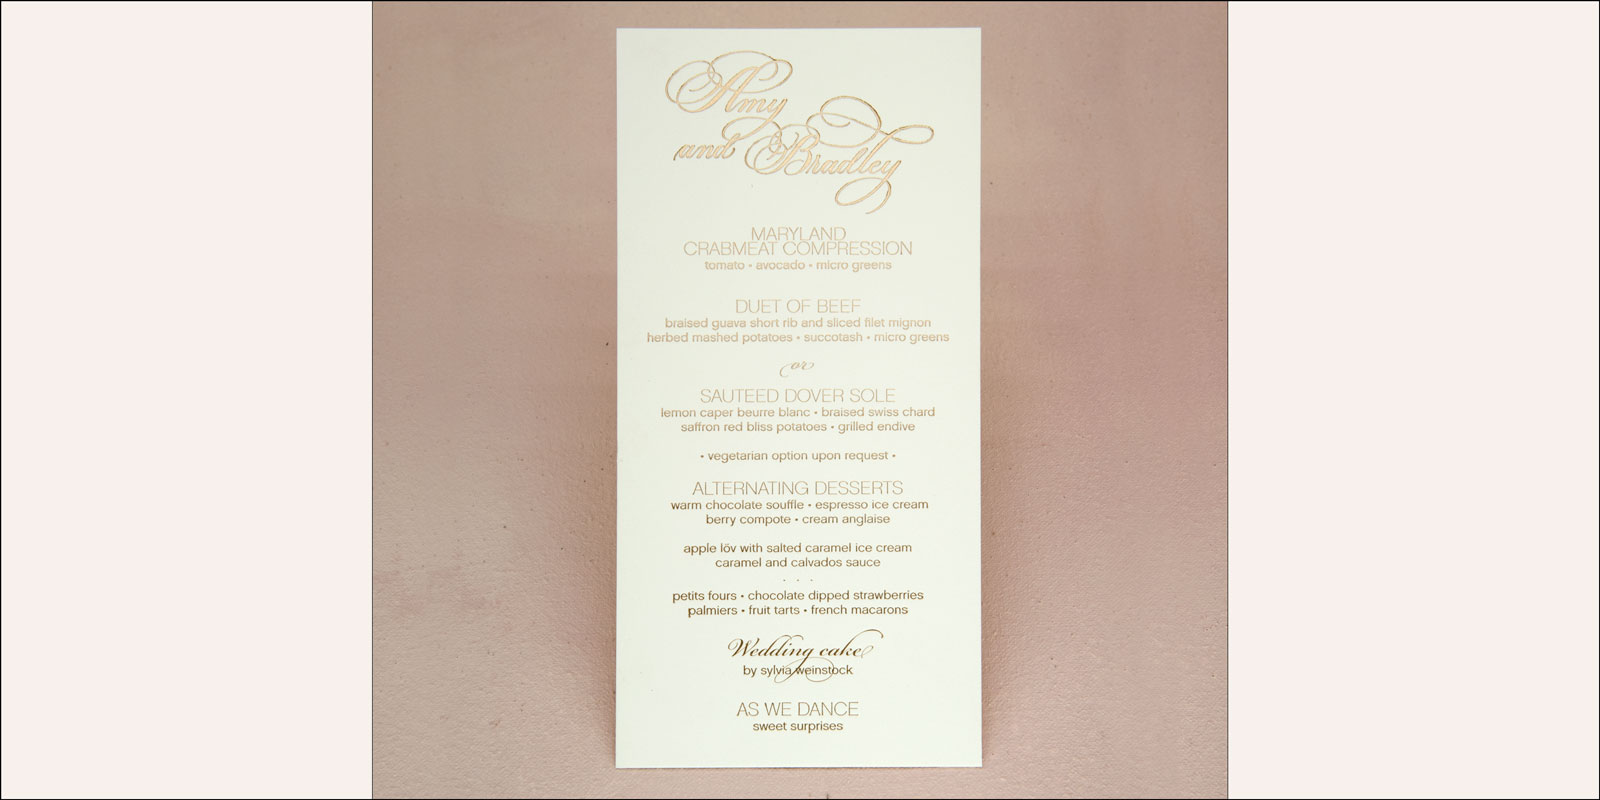 Amy-Bradley-Wedding-Menu-1